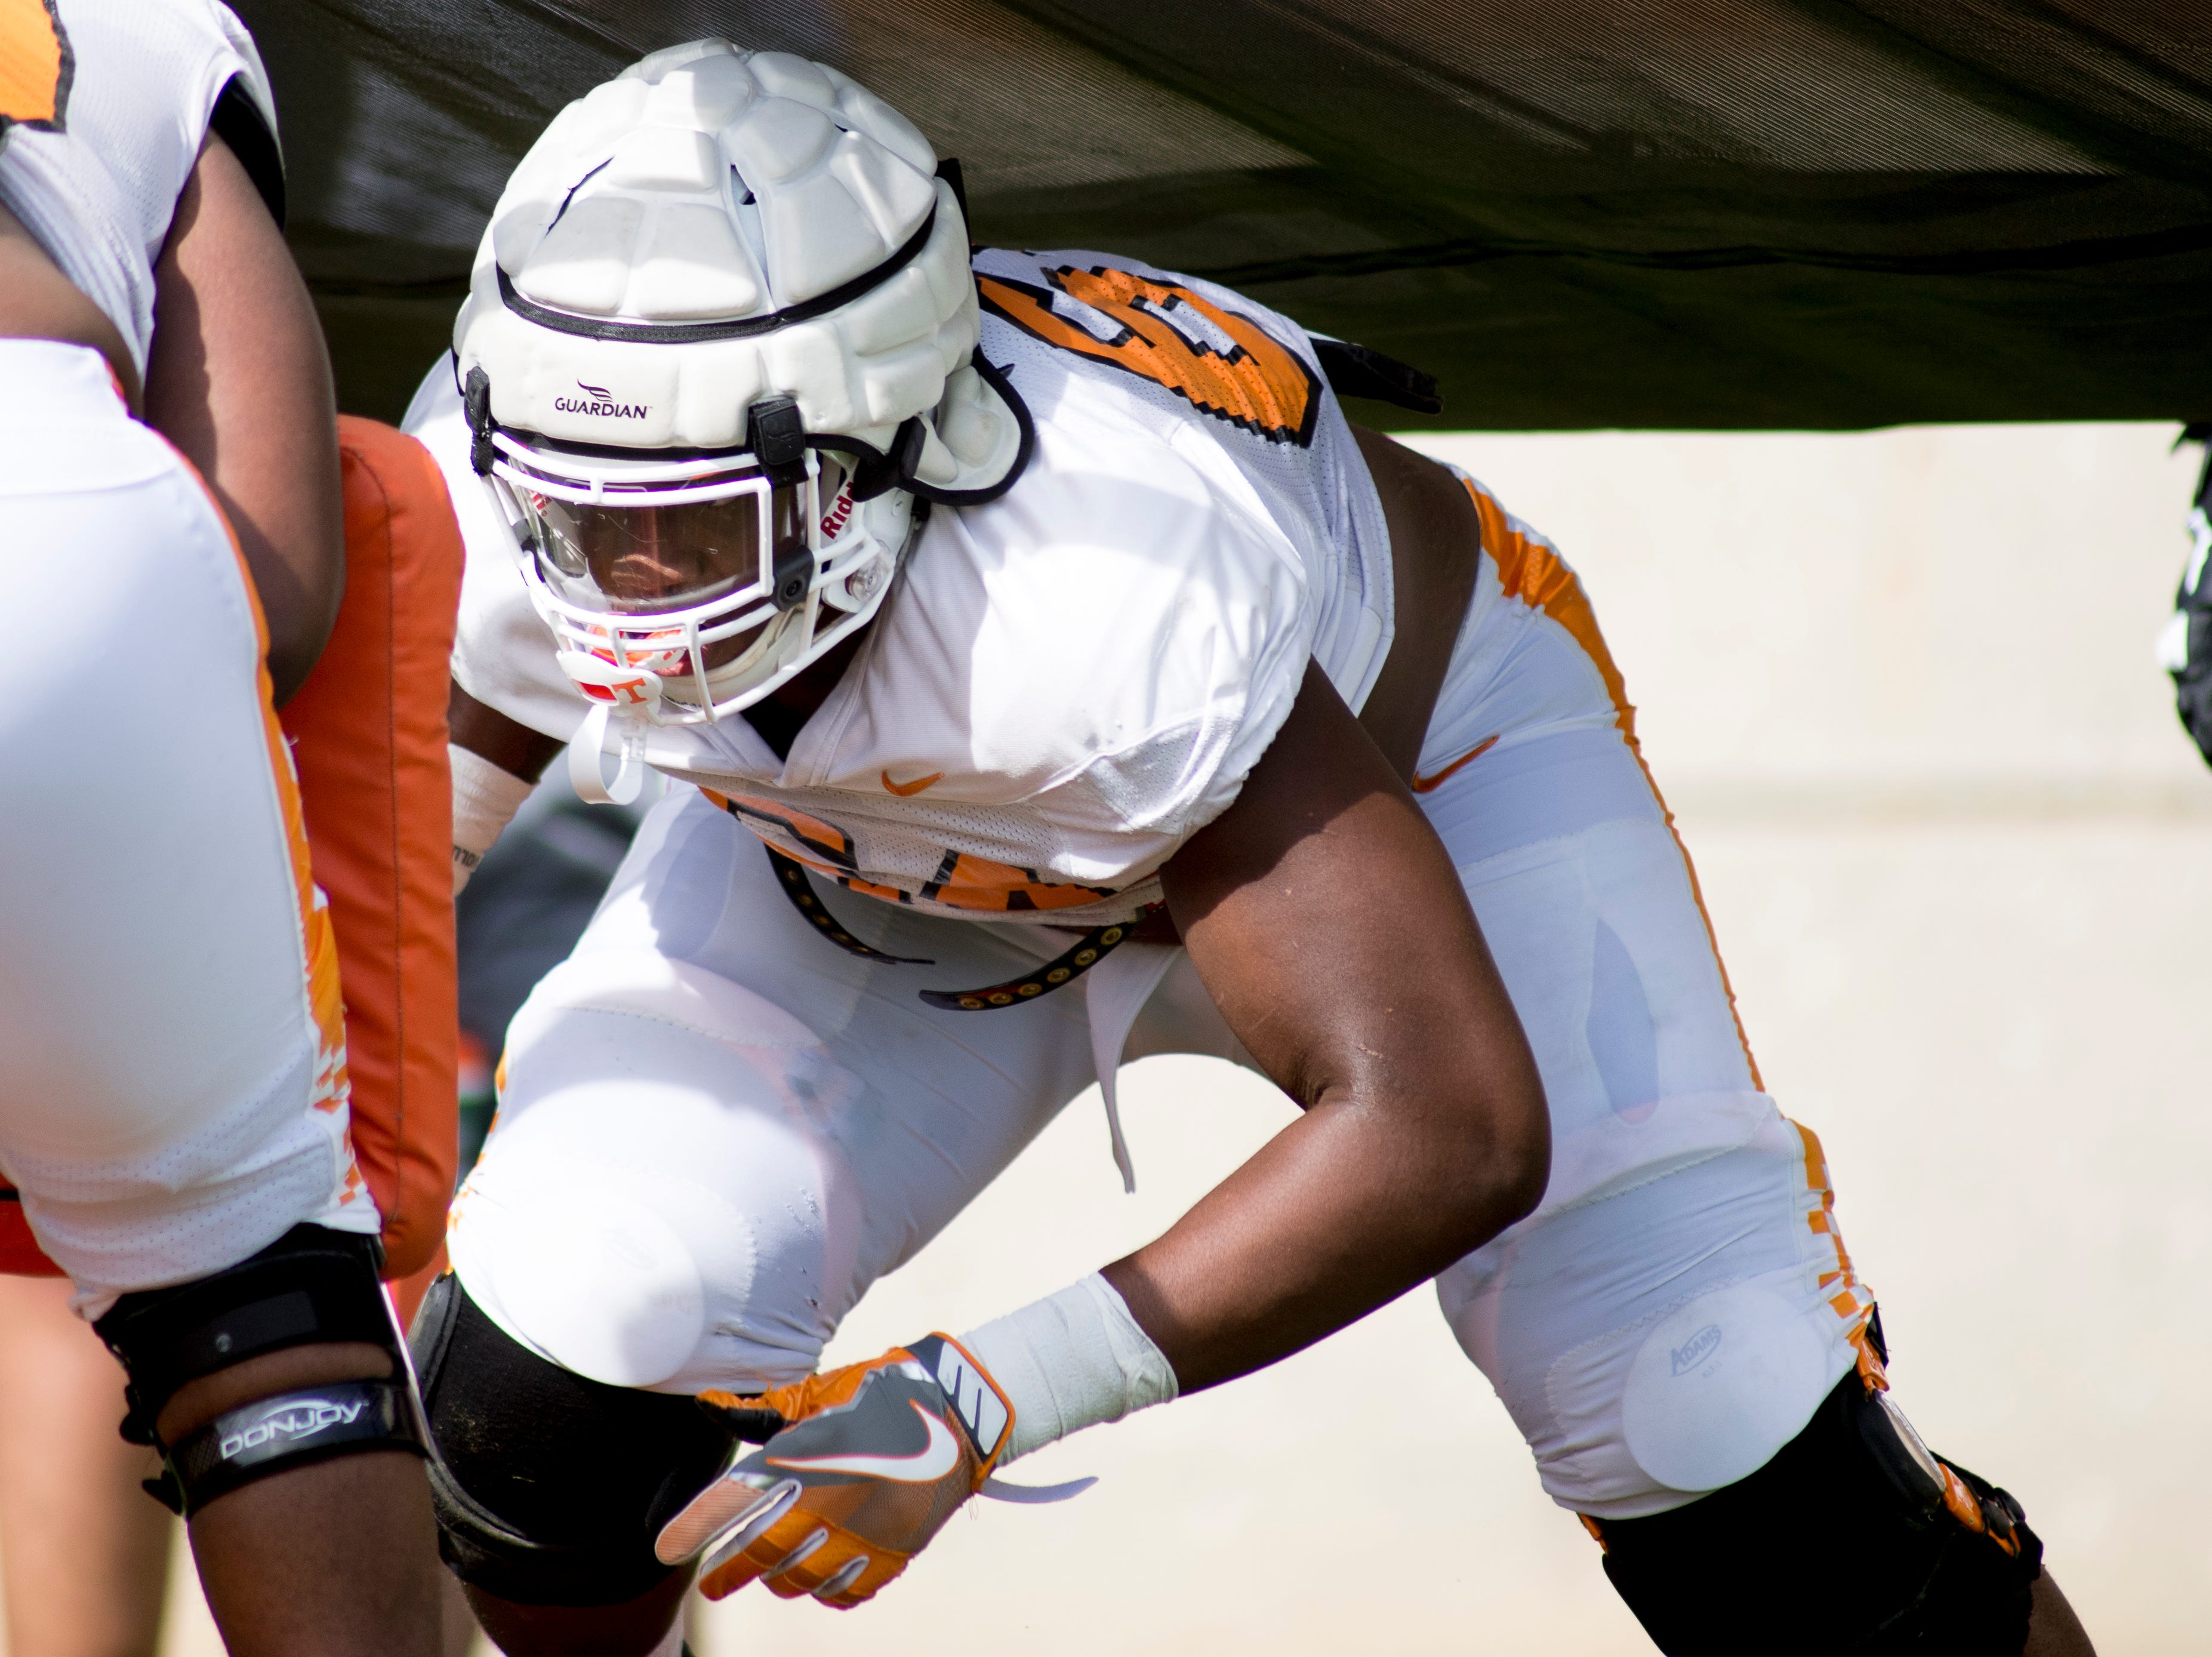 Tennessee's Wanya Morris (64) does a drill during Tennessee spring practice at Haslam Field in Knoxville, Tennessee on Thursday, April 11, 2019.